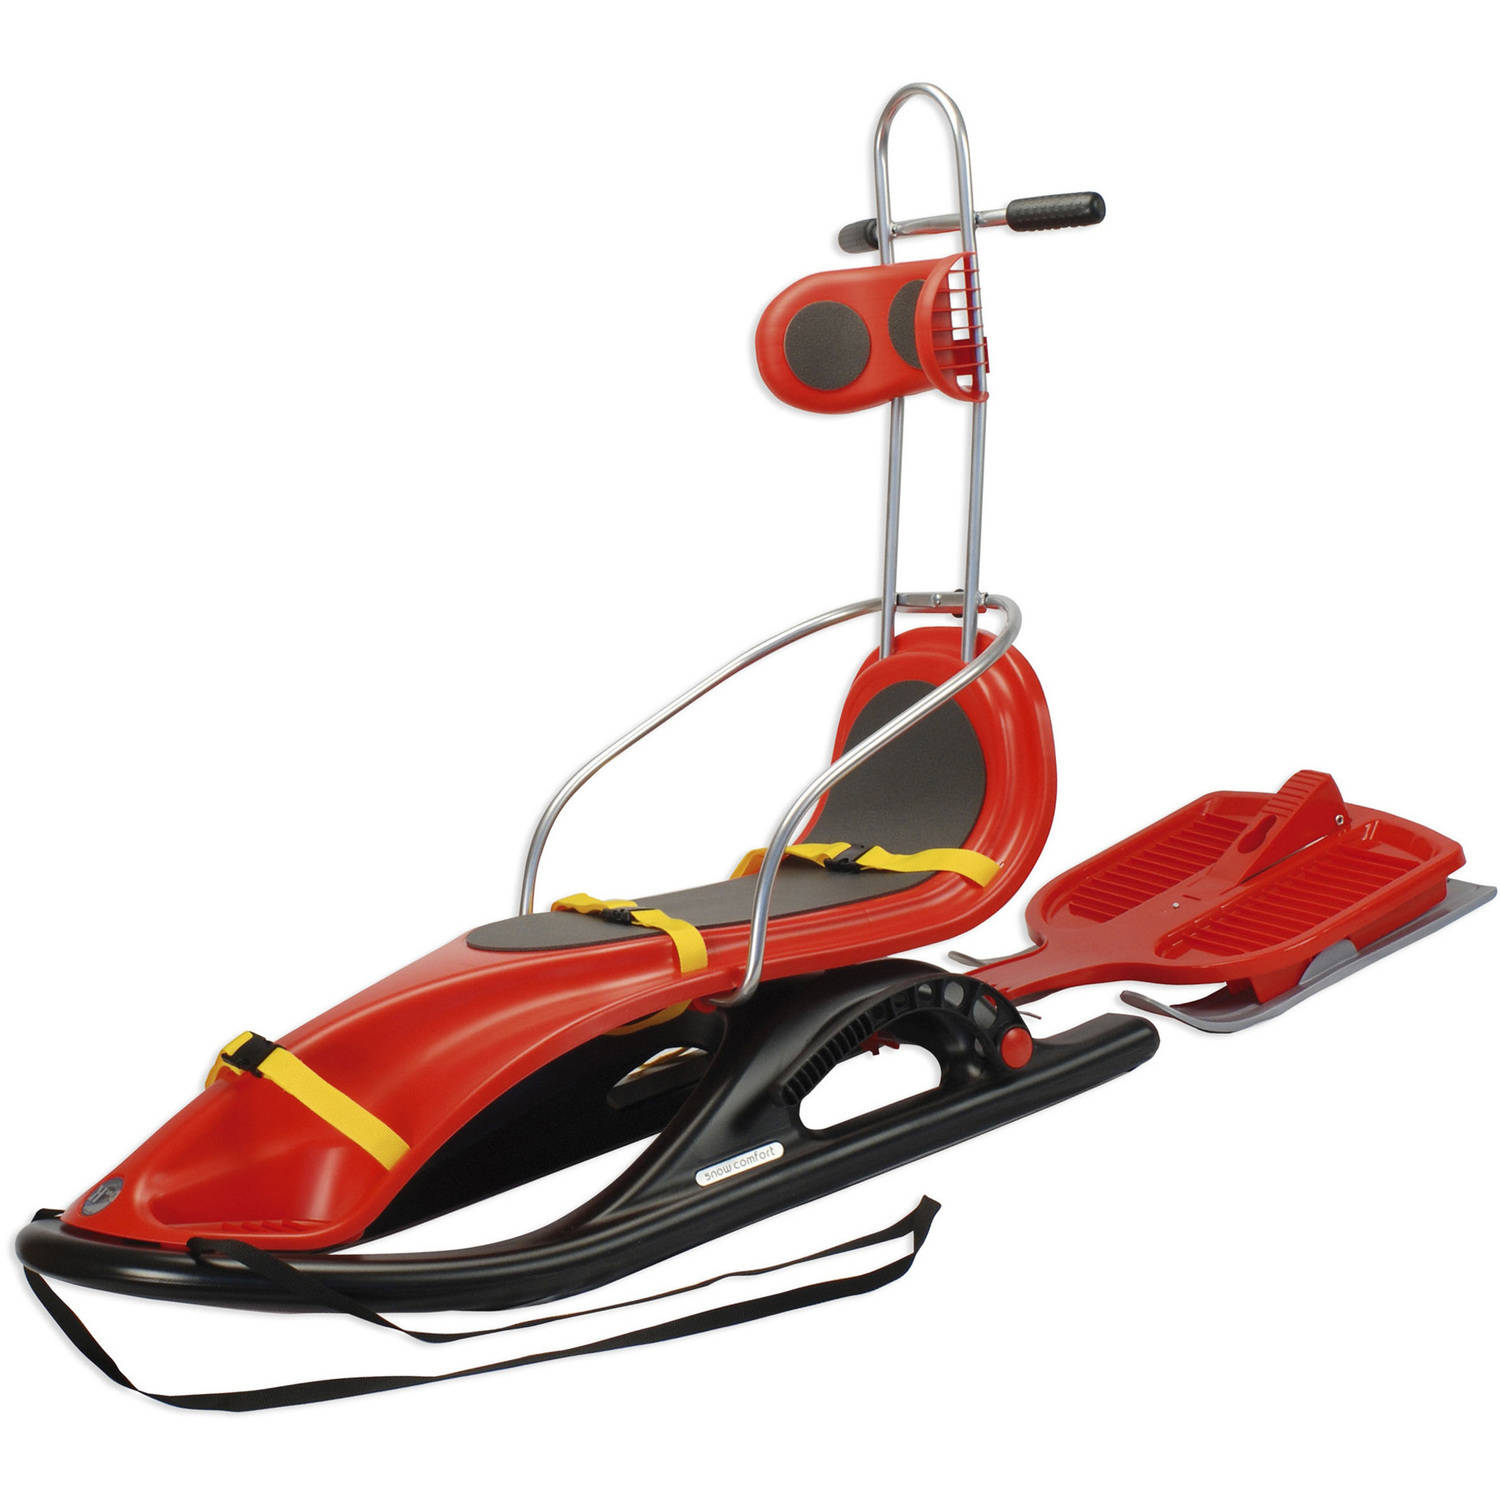 Kettler Snow Comfort, Red by KHW Sleds